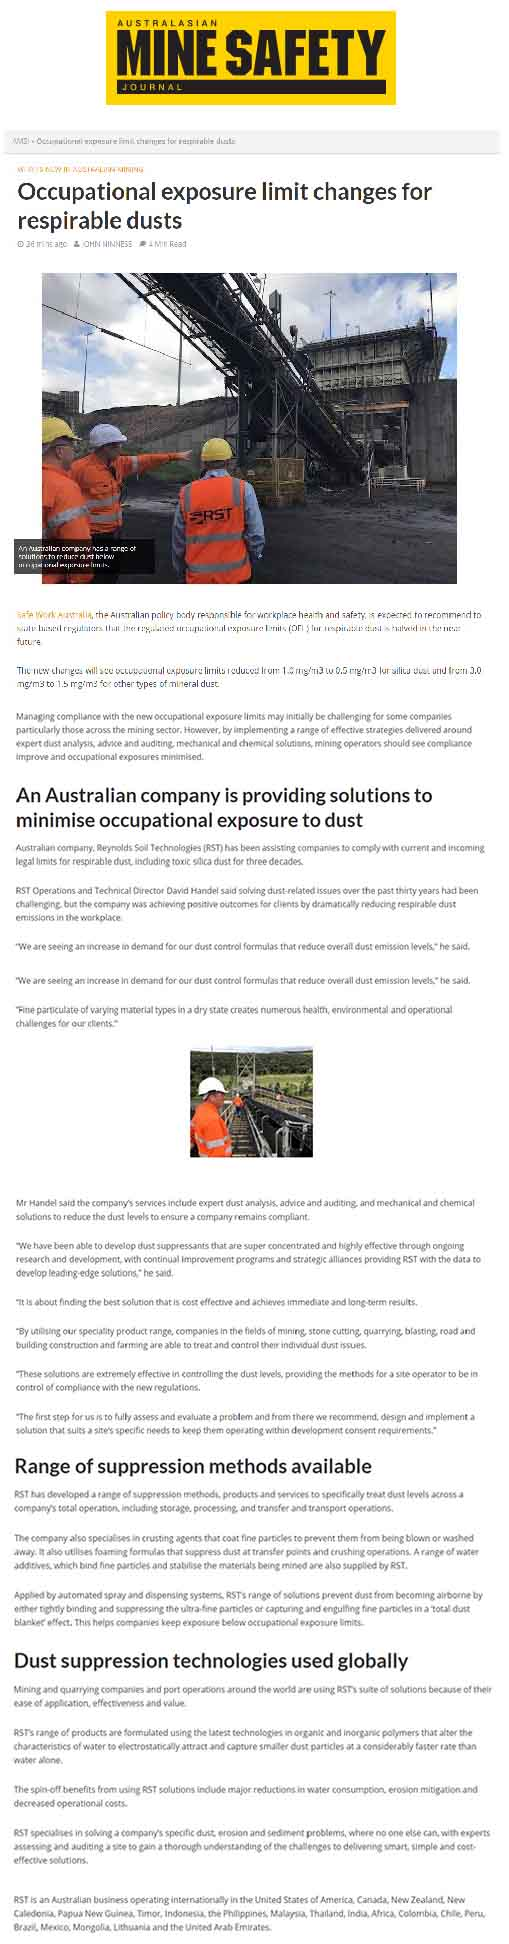 Occupational Exposure Limit Changes for Respirable Dusts